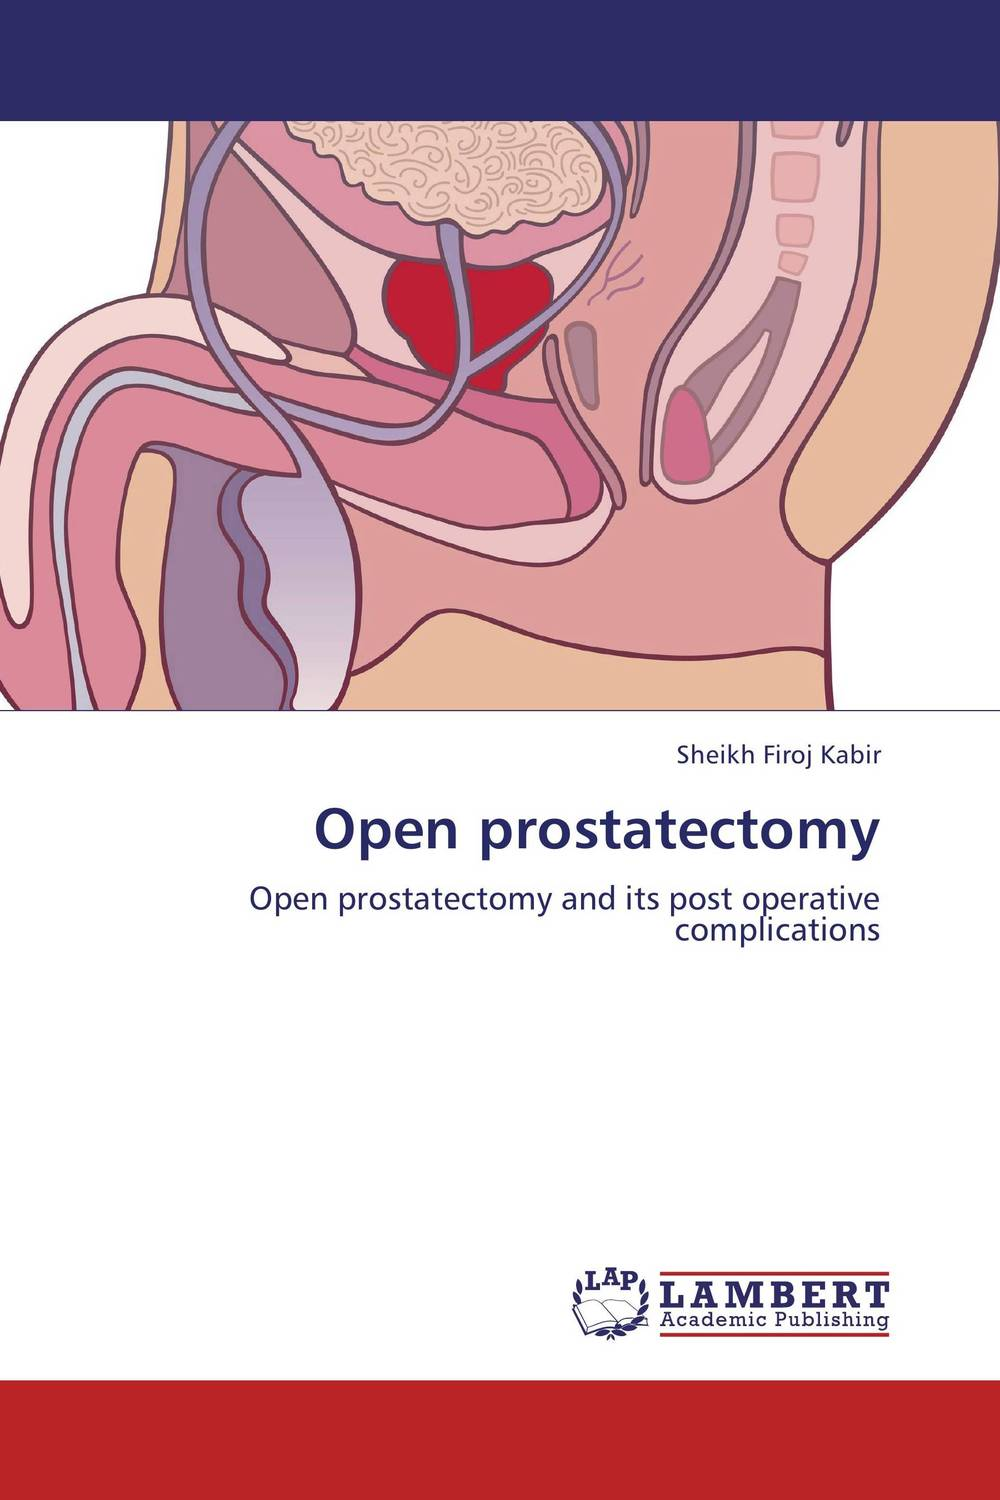 Open prostatectomy benign enlargement of prostate gland bep in ayurveda